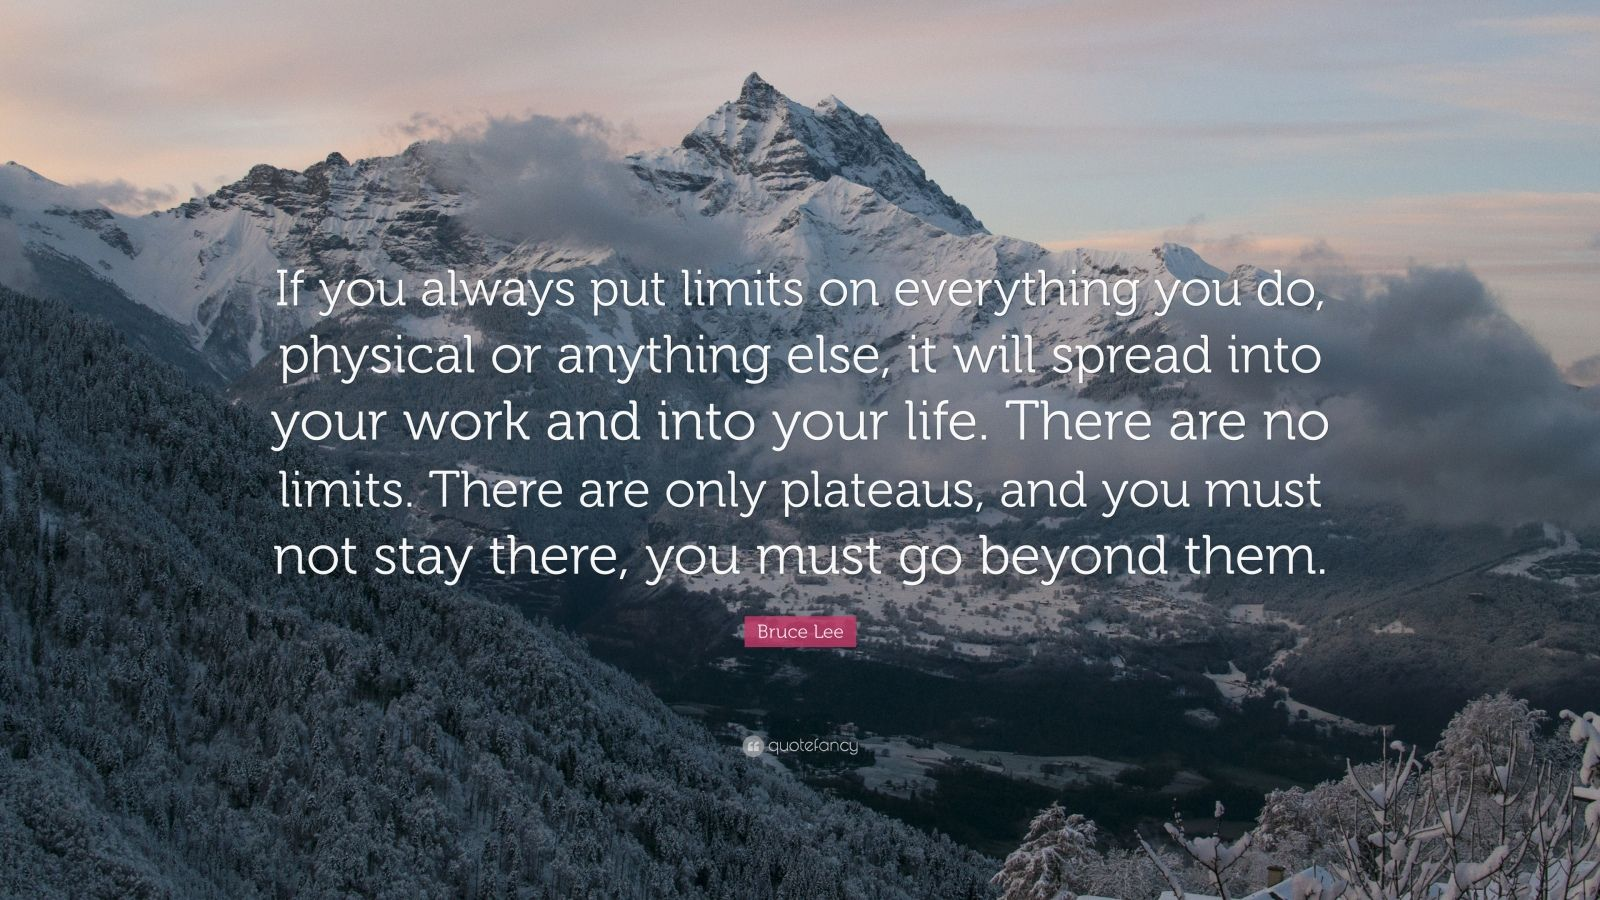 "Bruce Lee Quote: ""If you always put limits on everything you do, physical or anything else, it will spread into your work and into your life. There are no limits. There are only plateaus, and you must not stay there, you must go beyond them."""